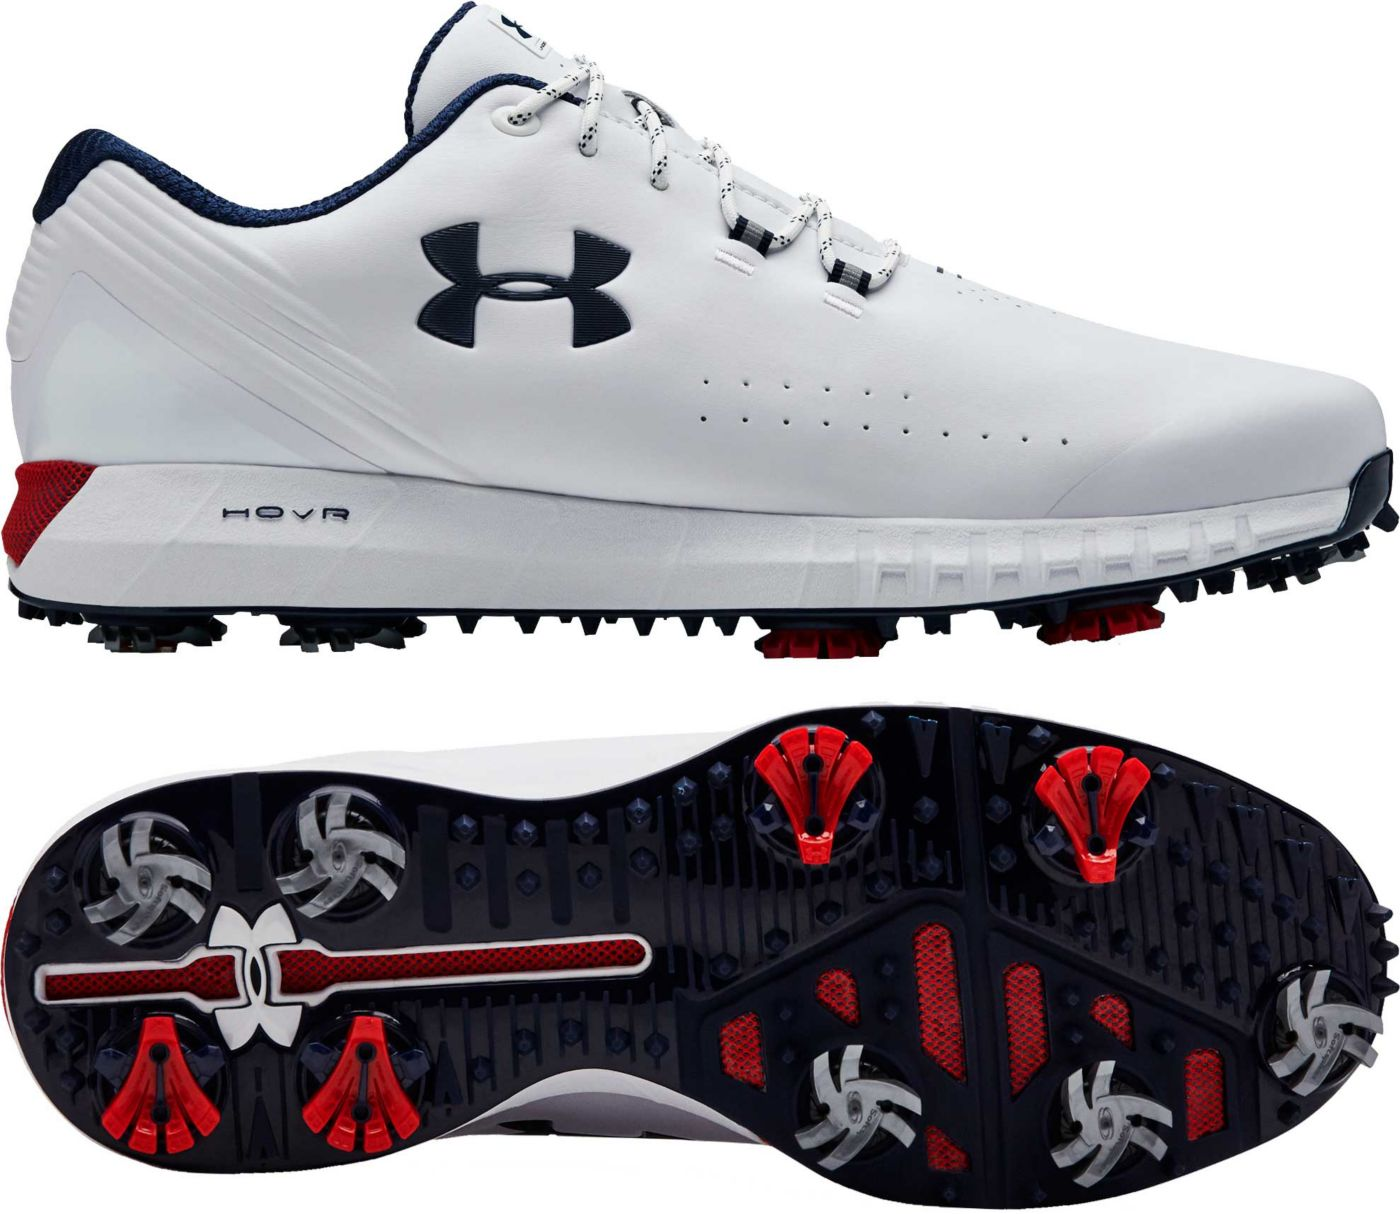 Under Armour Men's HOVR Drive Golf Shoes